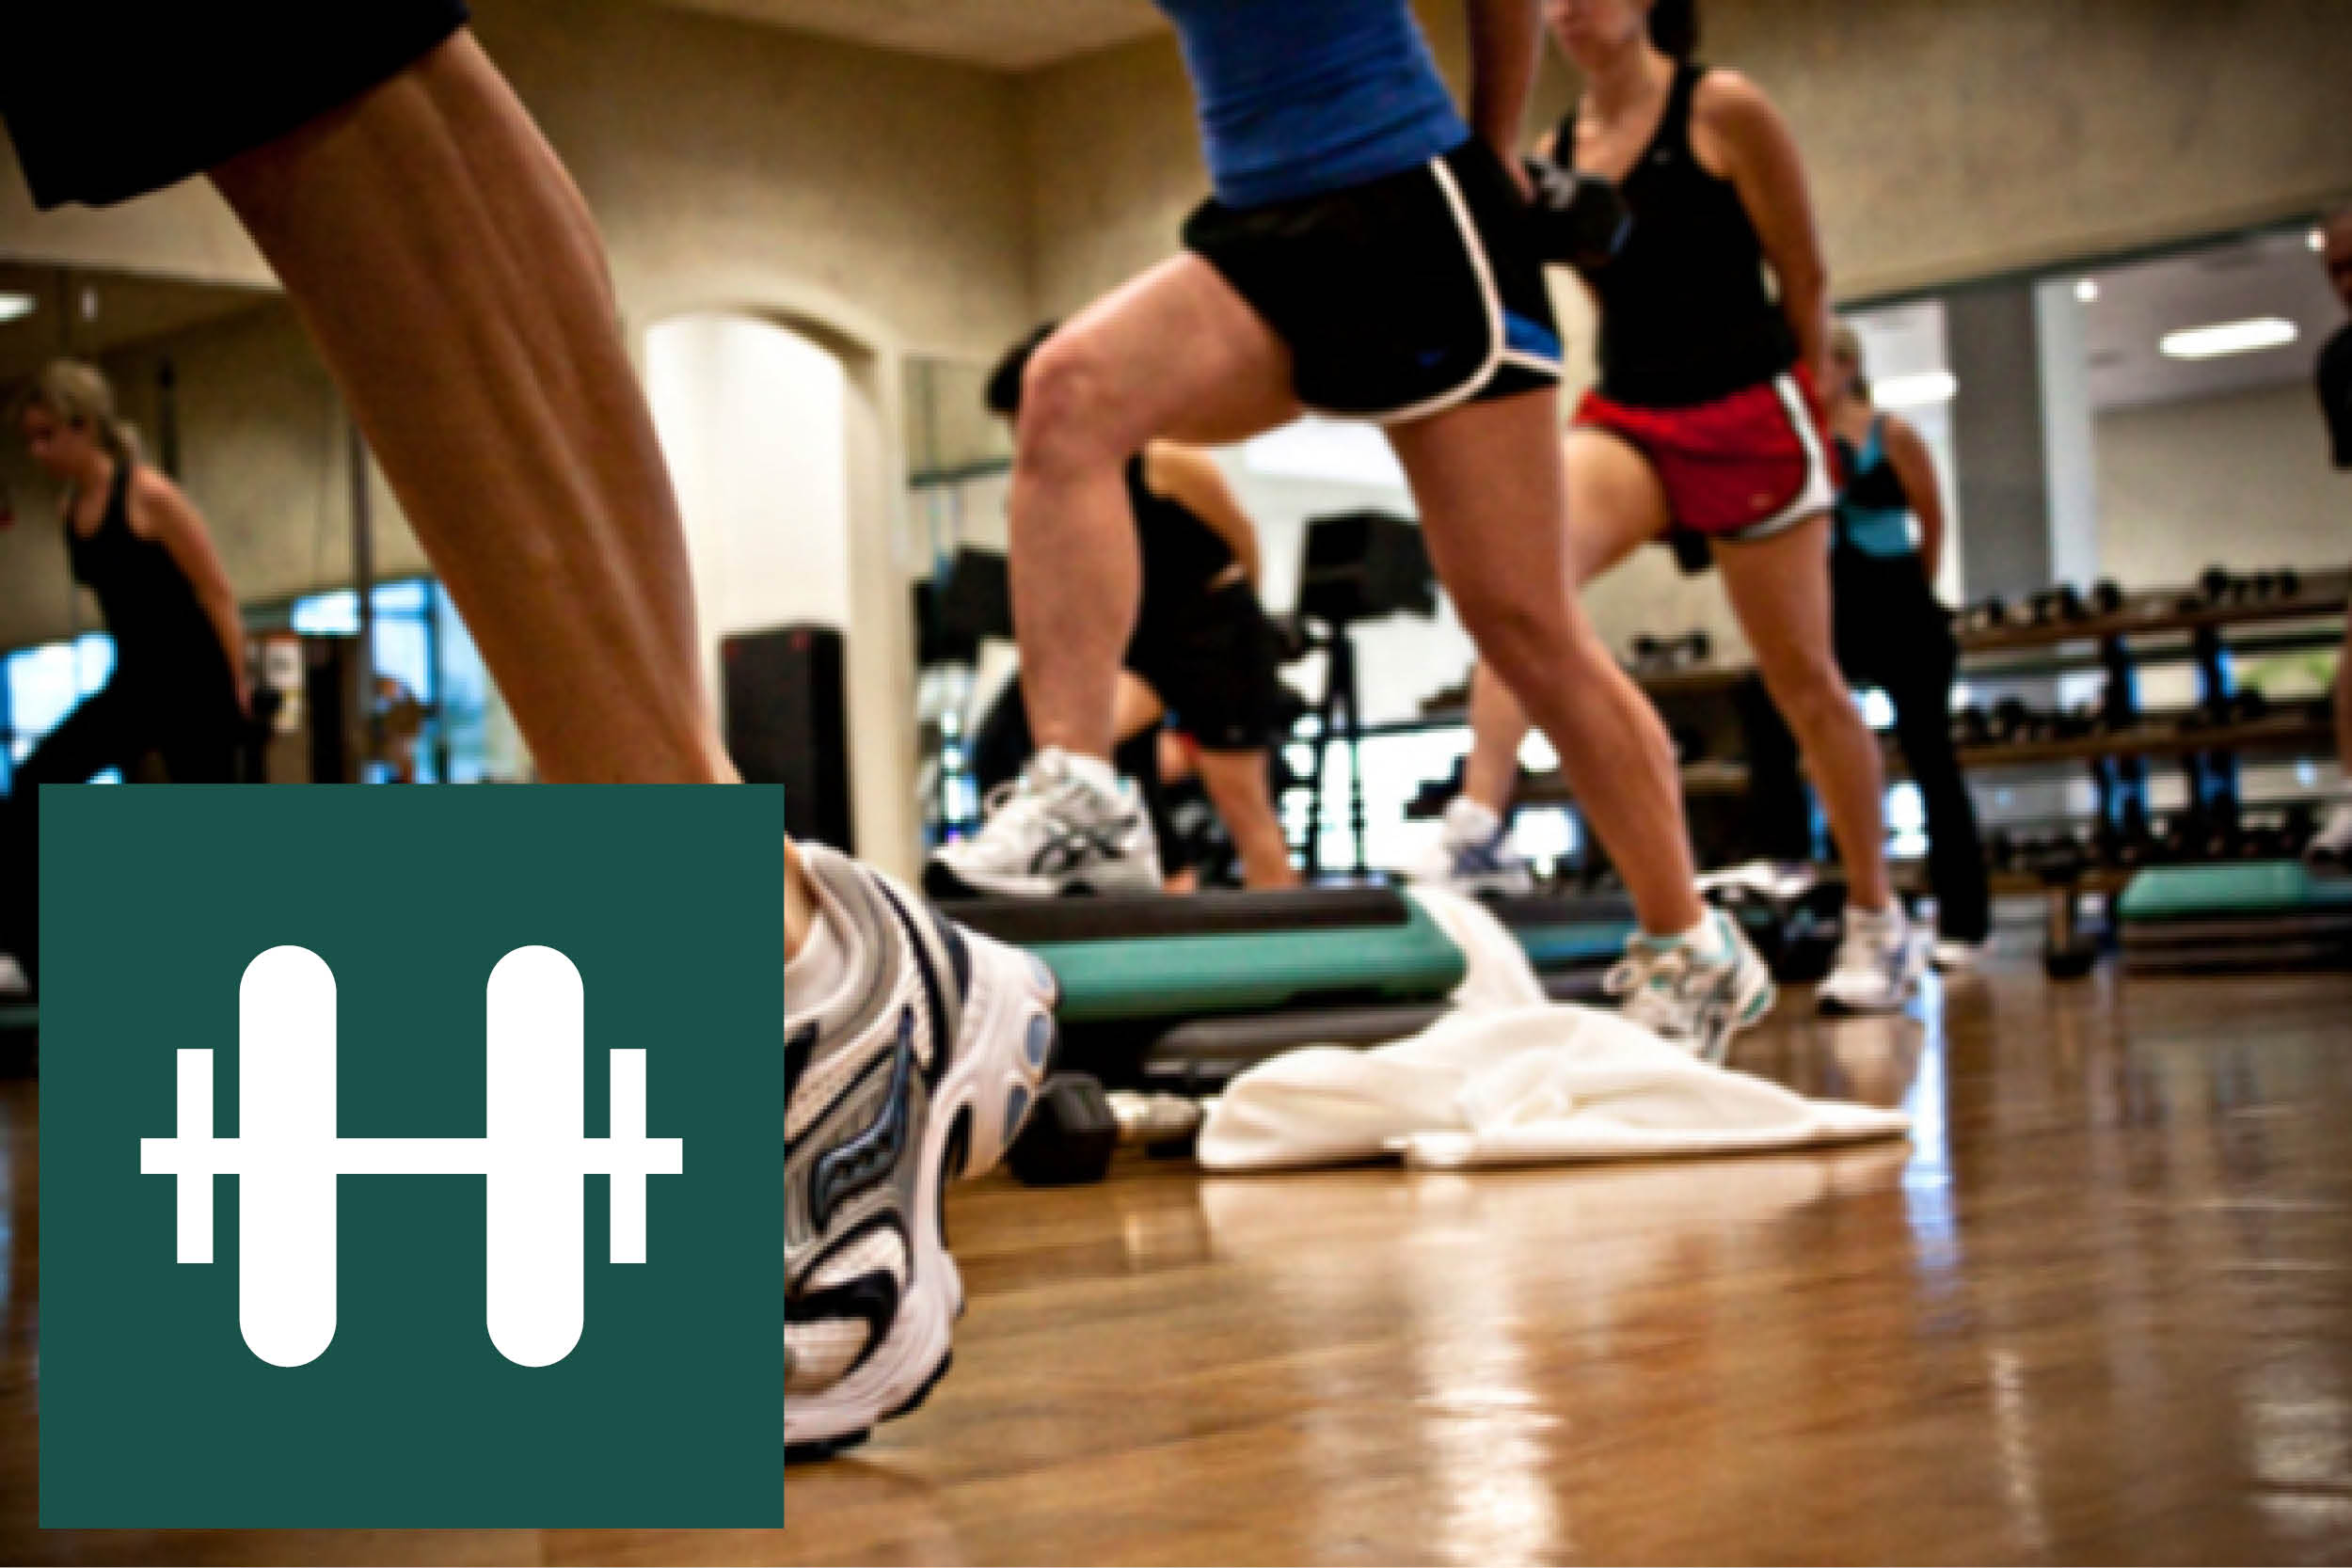 GYM  We have a comprehensive Gym which you may use as a guest member after induction.  If you would like personal training please contact Wayne who would delighted to tailor a programme to your needs.  We have lots of private lanes for jogging and power walking.